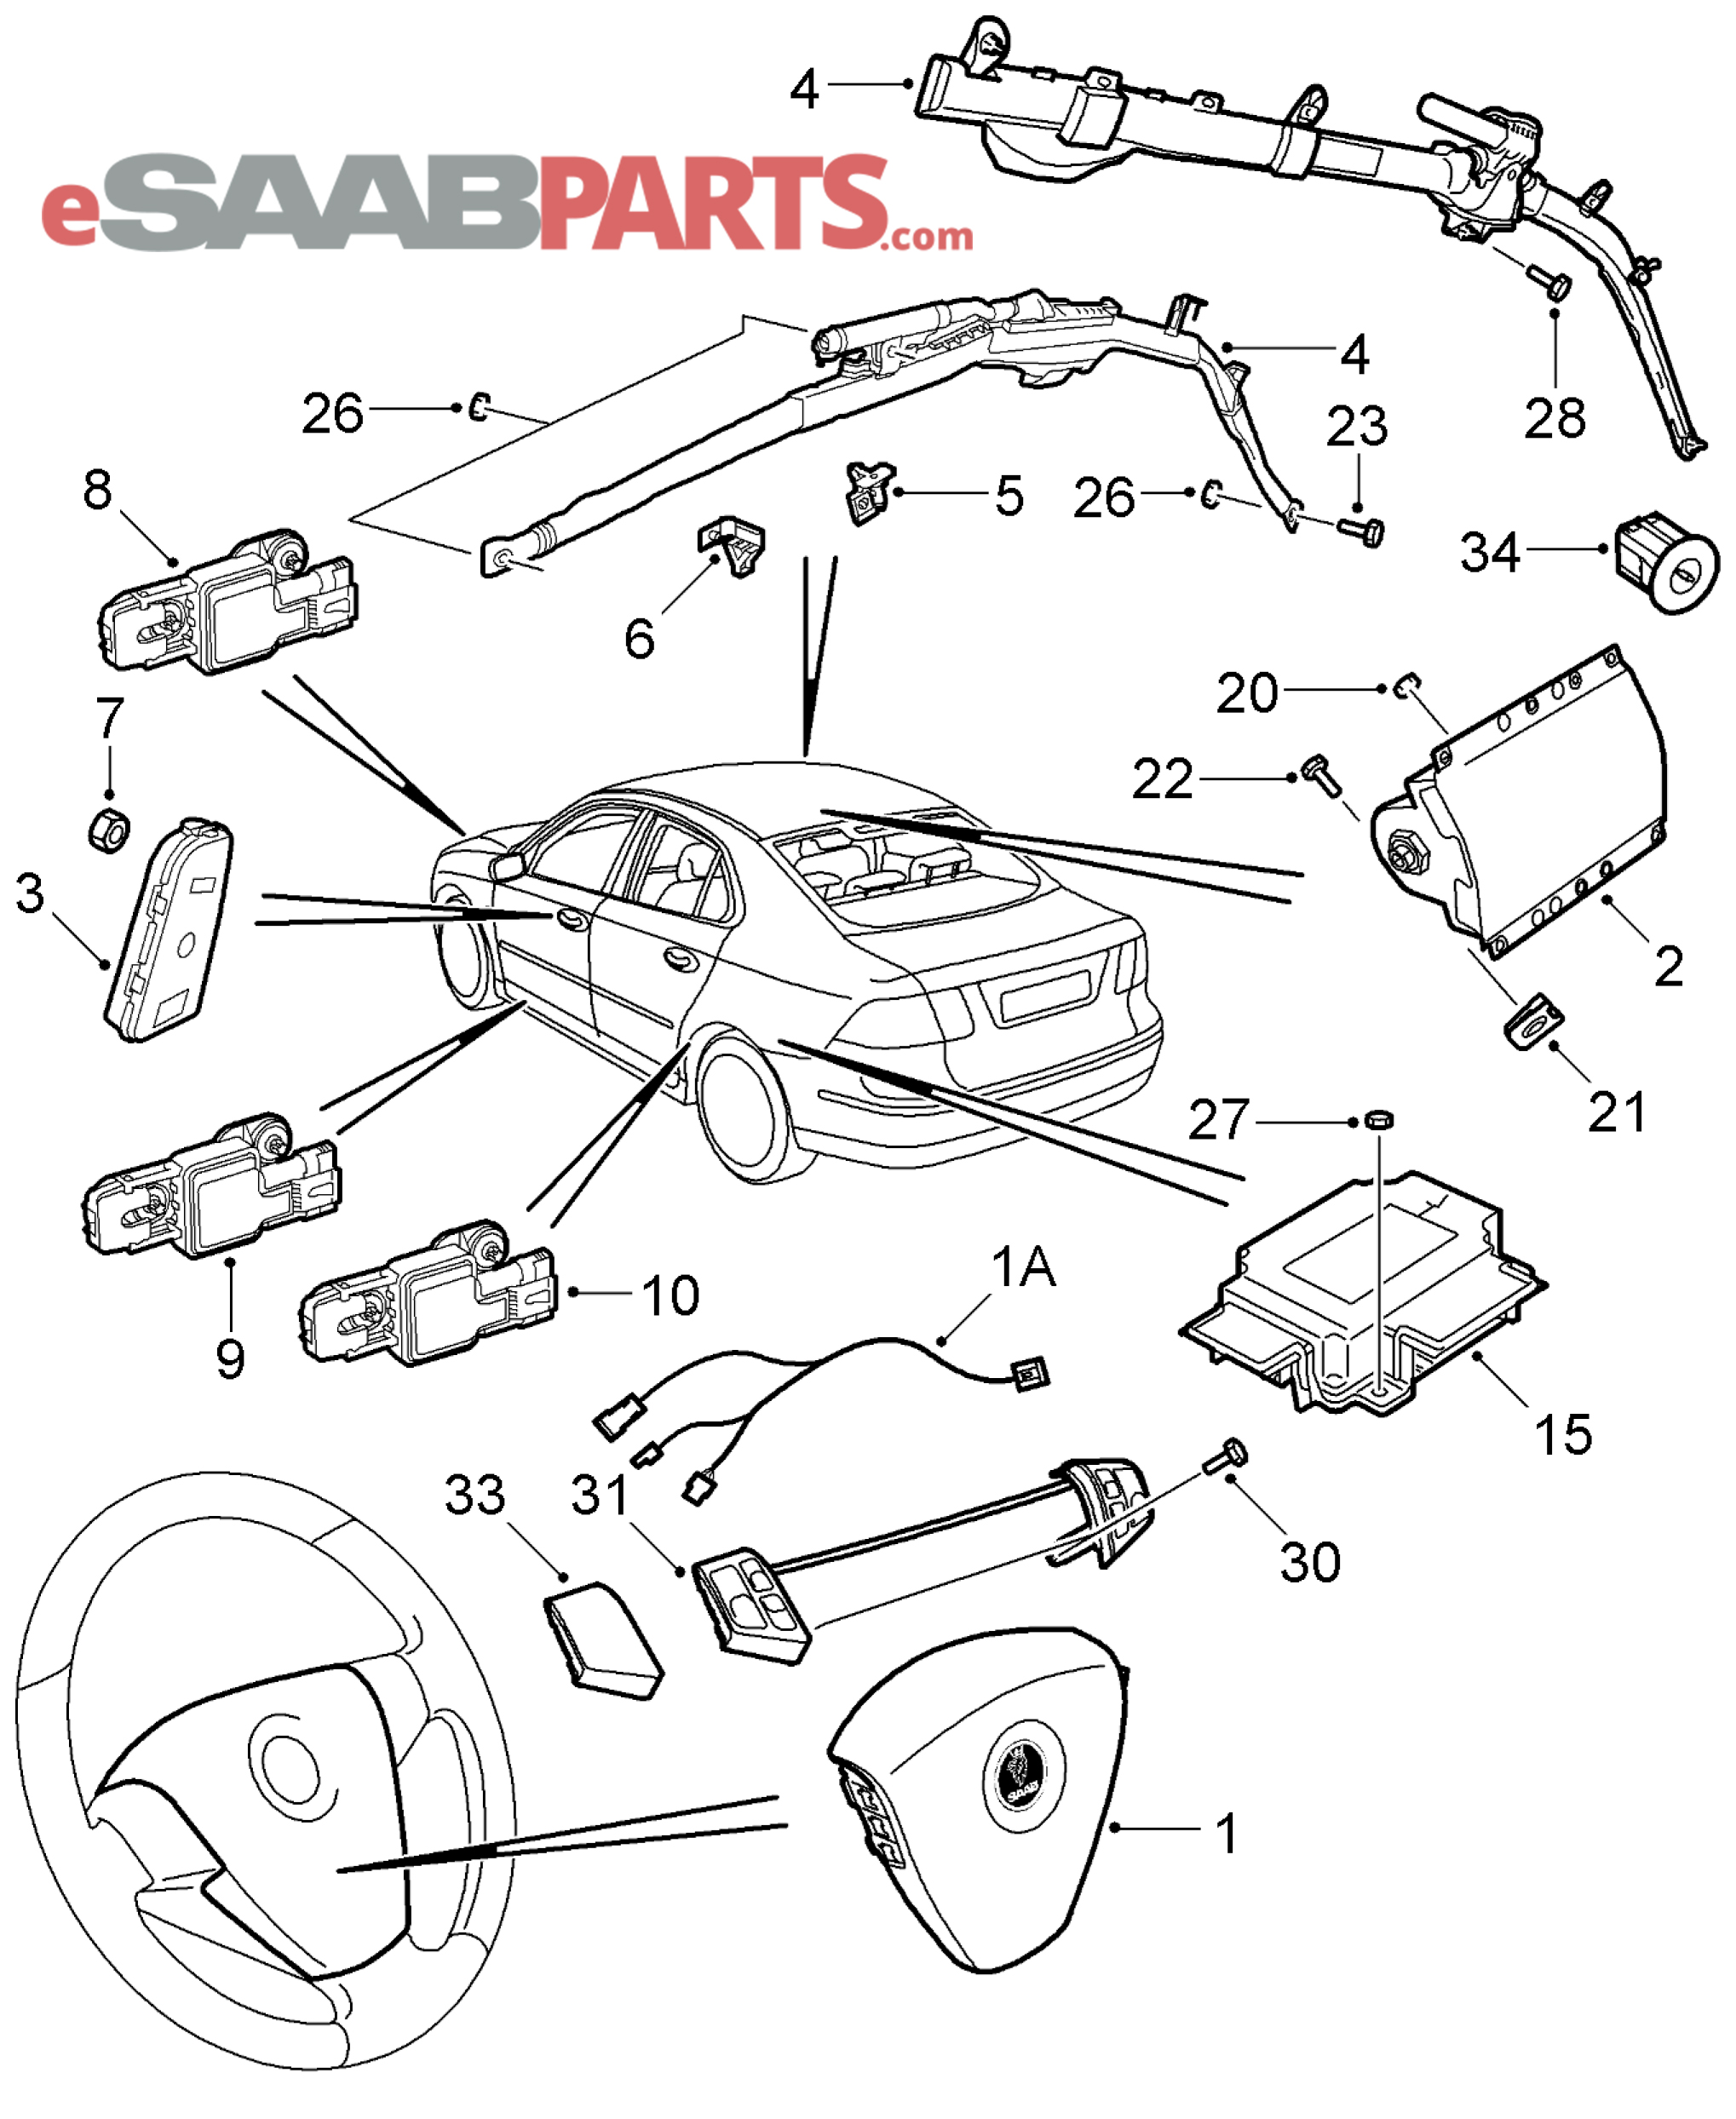 Saab 93 Airbag Wiring Diagram